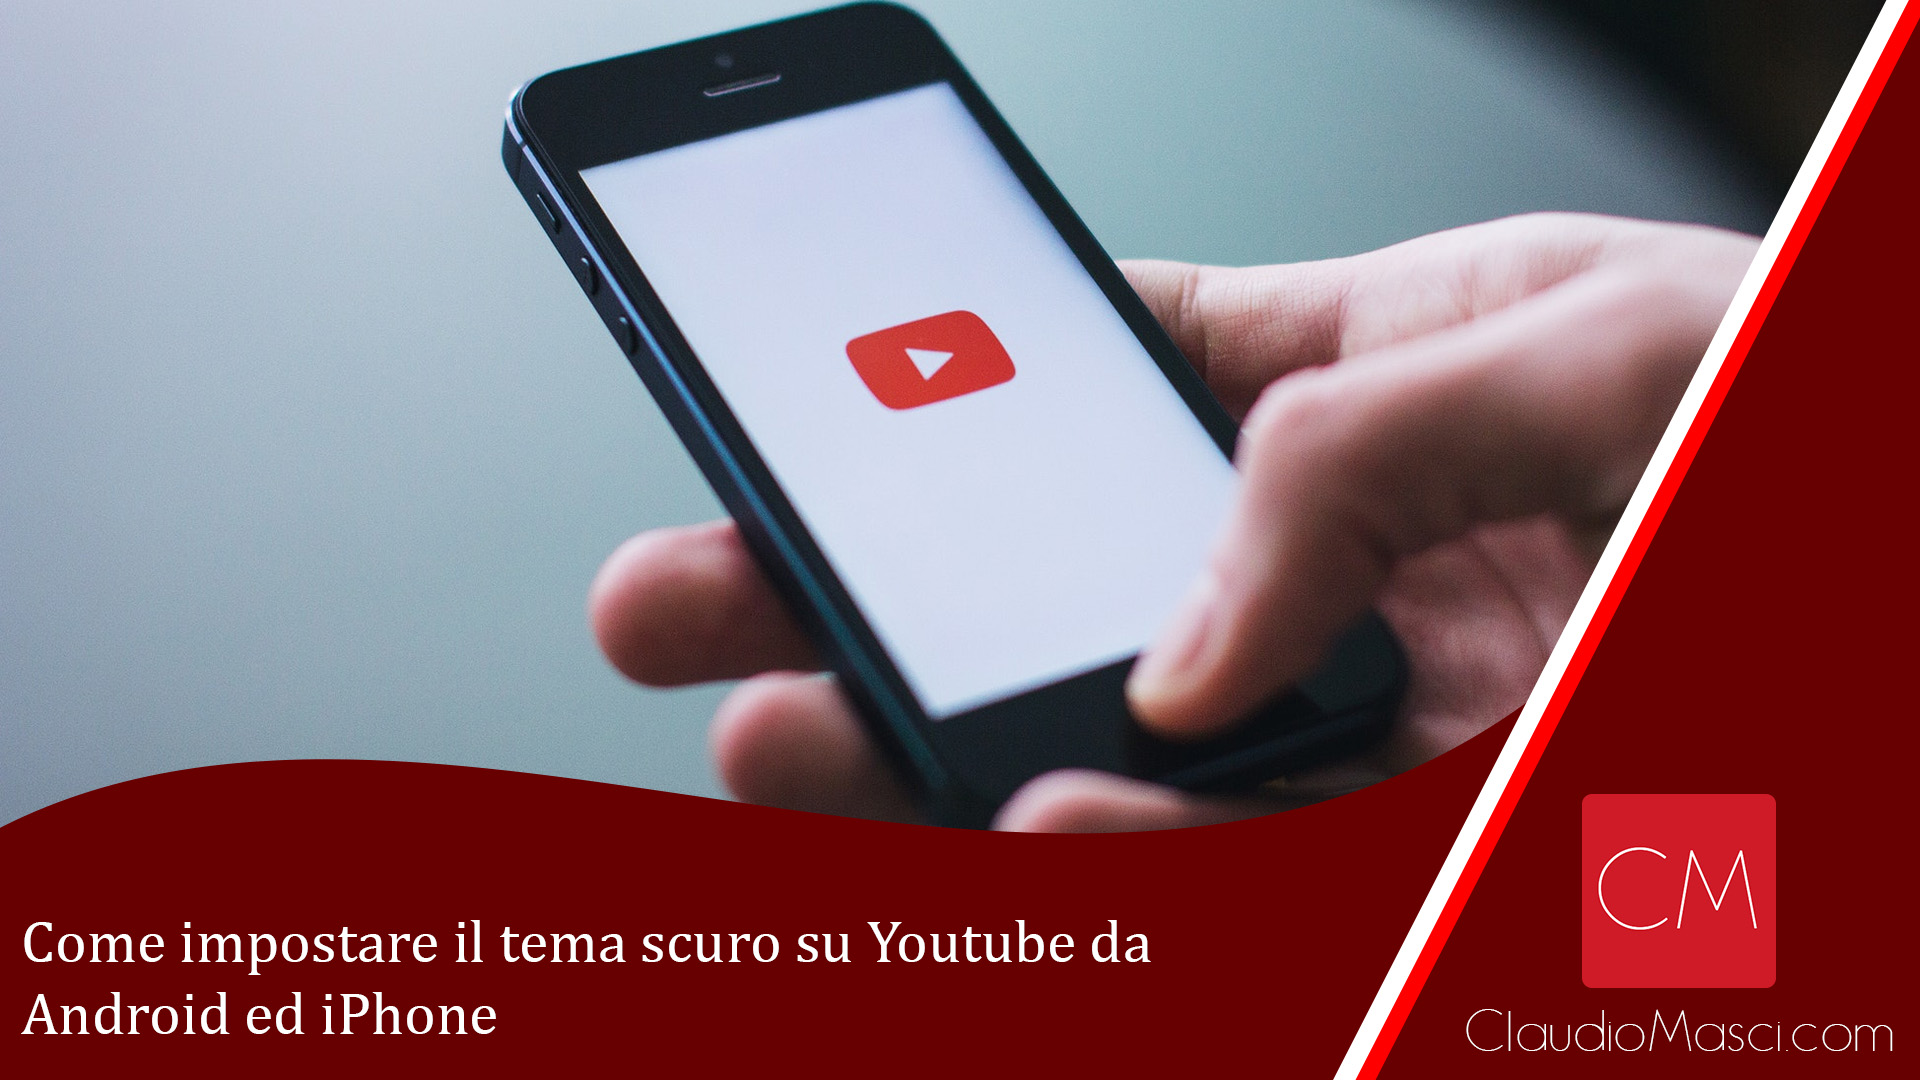 Come impostare il tema scuro su Youtube da Android ed iPhone